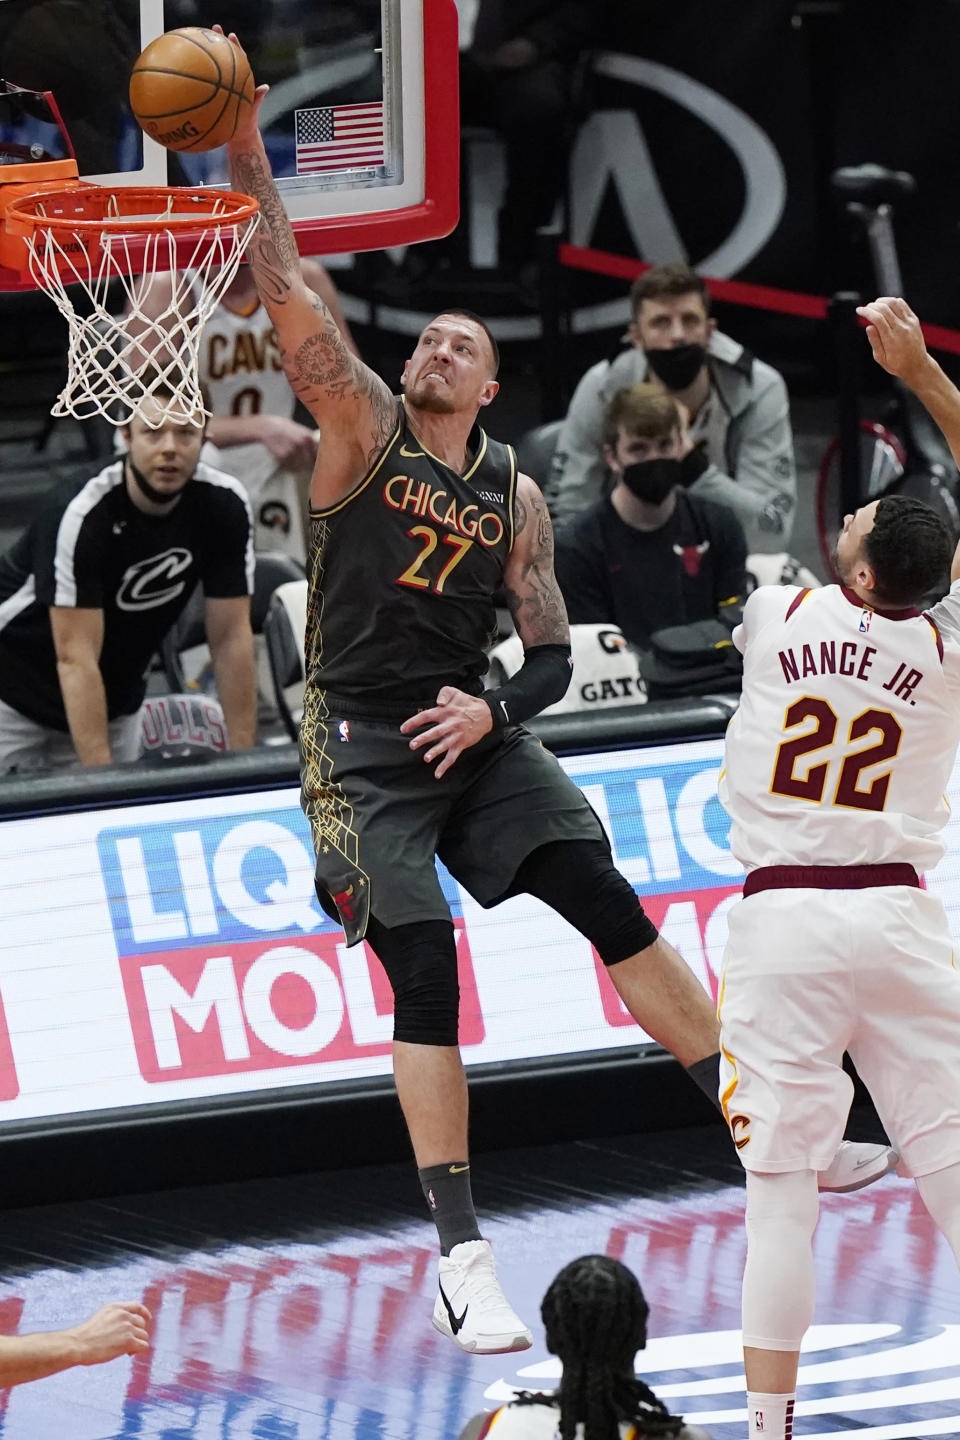 Chicago Bulls center Daniel Theis dunks against Cleveland Cavaliers forward Larry Nance Jr. during the second half of an NBA basketball game in Chicago, Saturday, April 17, 2021. (AP Photo/Nam Y. Huh)